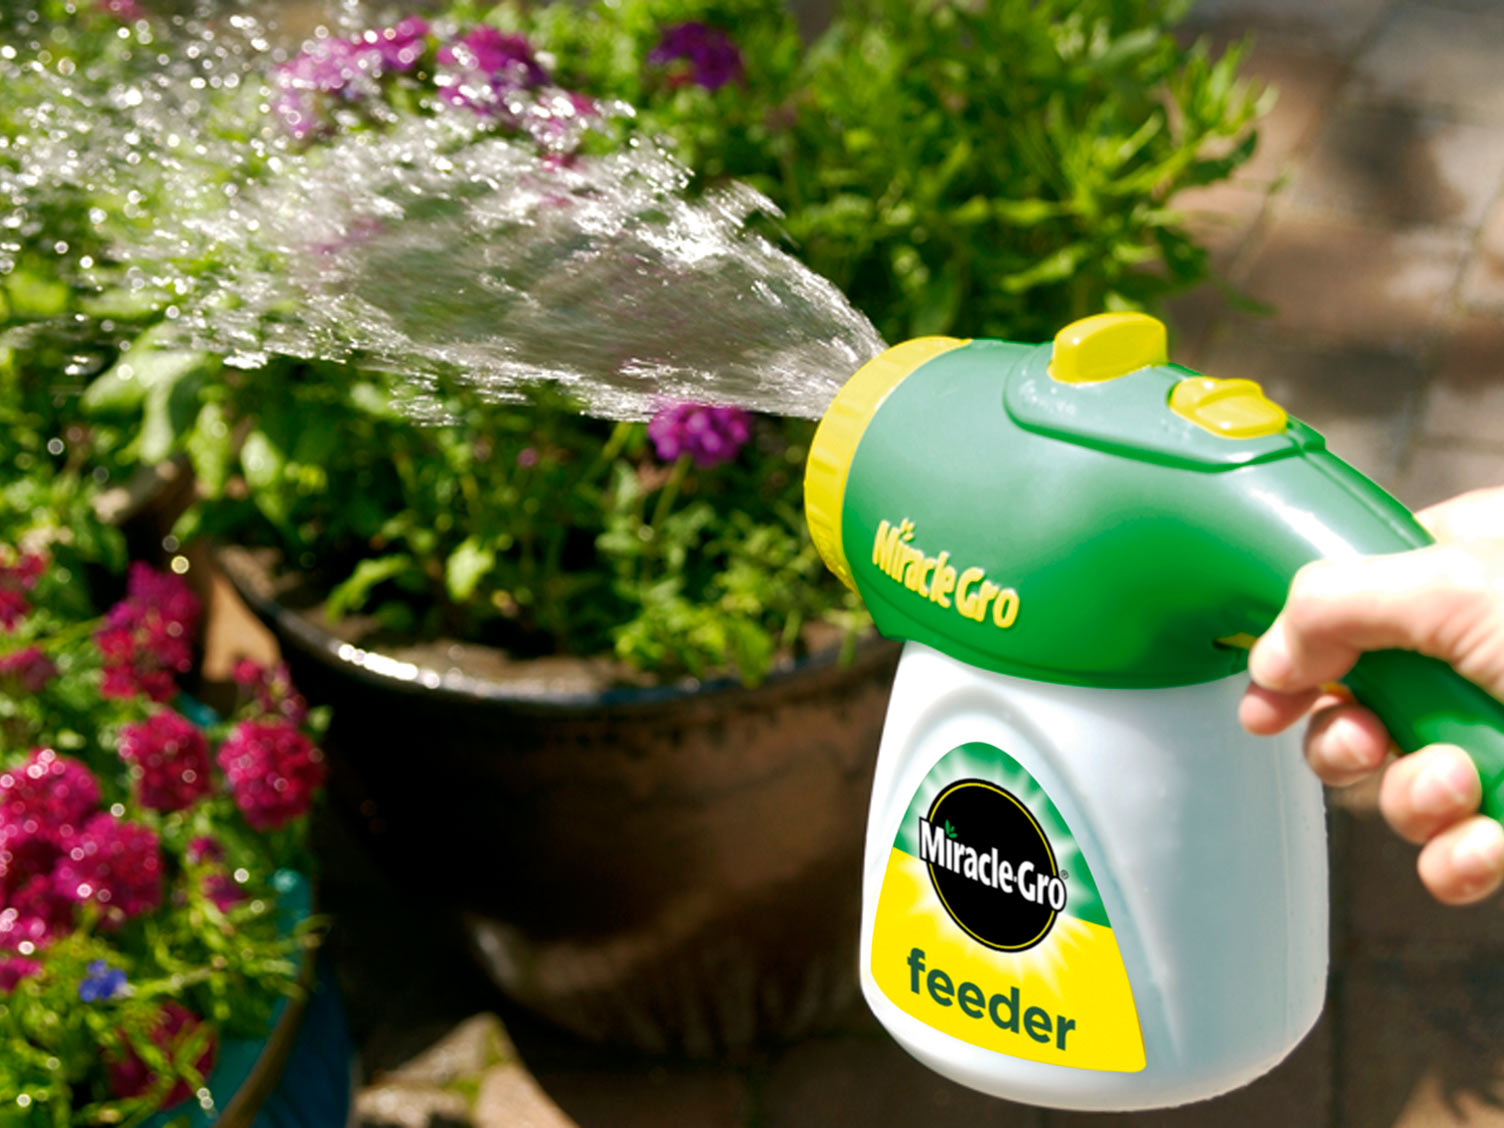 Miracle-Gro Feeder unit in use